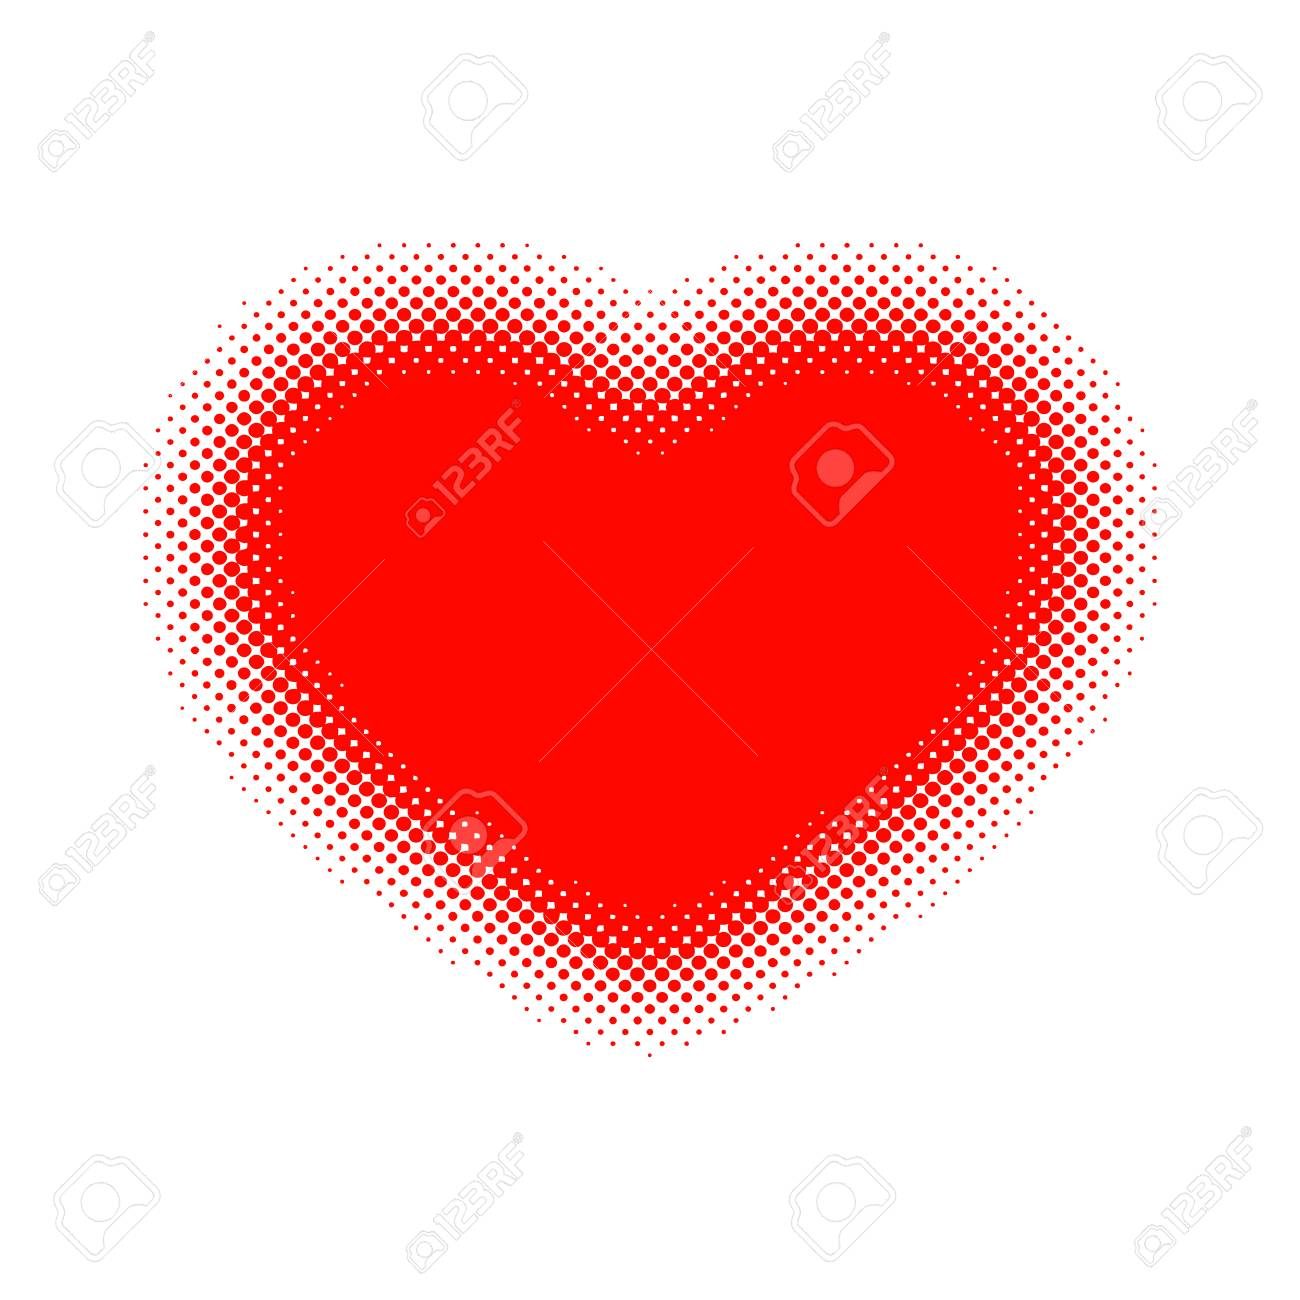 Red Heart Halftone Vector Illustration Abstract Dots Heart